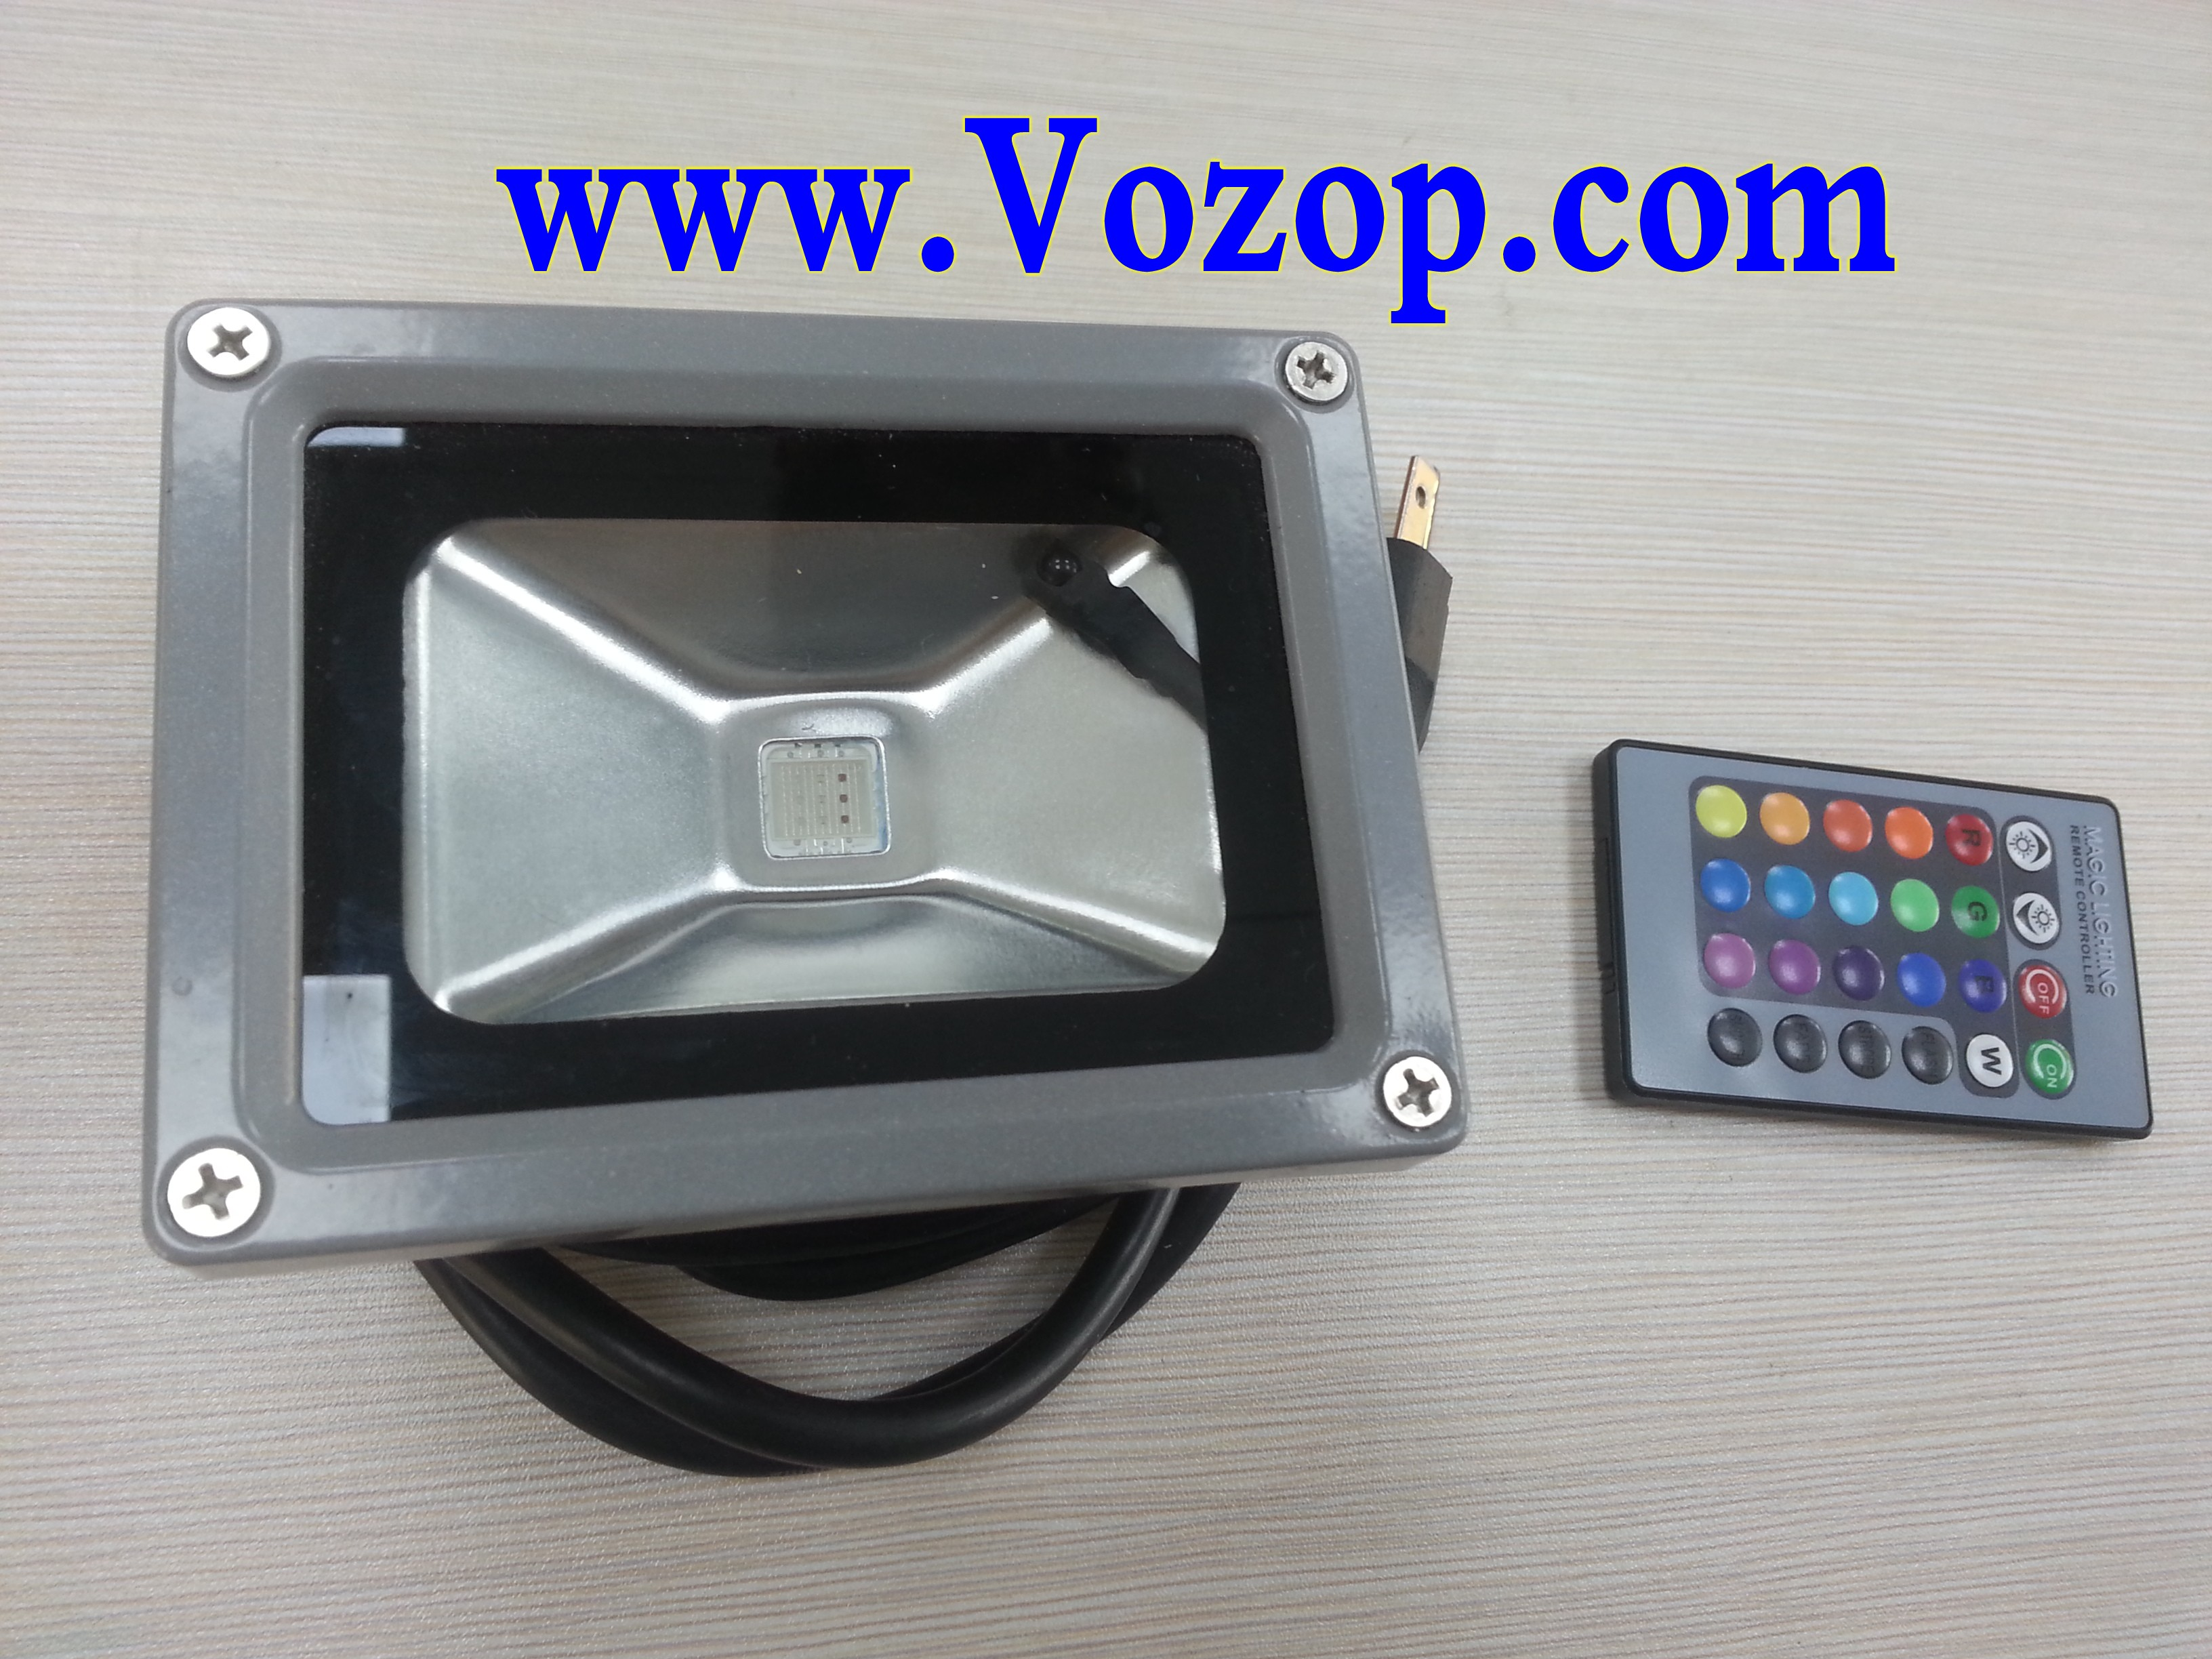 RGB_floodlight_10W_with_Remote_controller_Waterproof_LED_Outdoor_Flood_Light